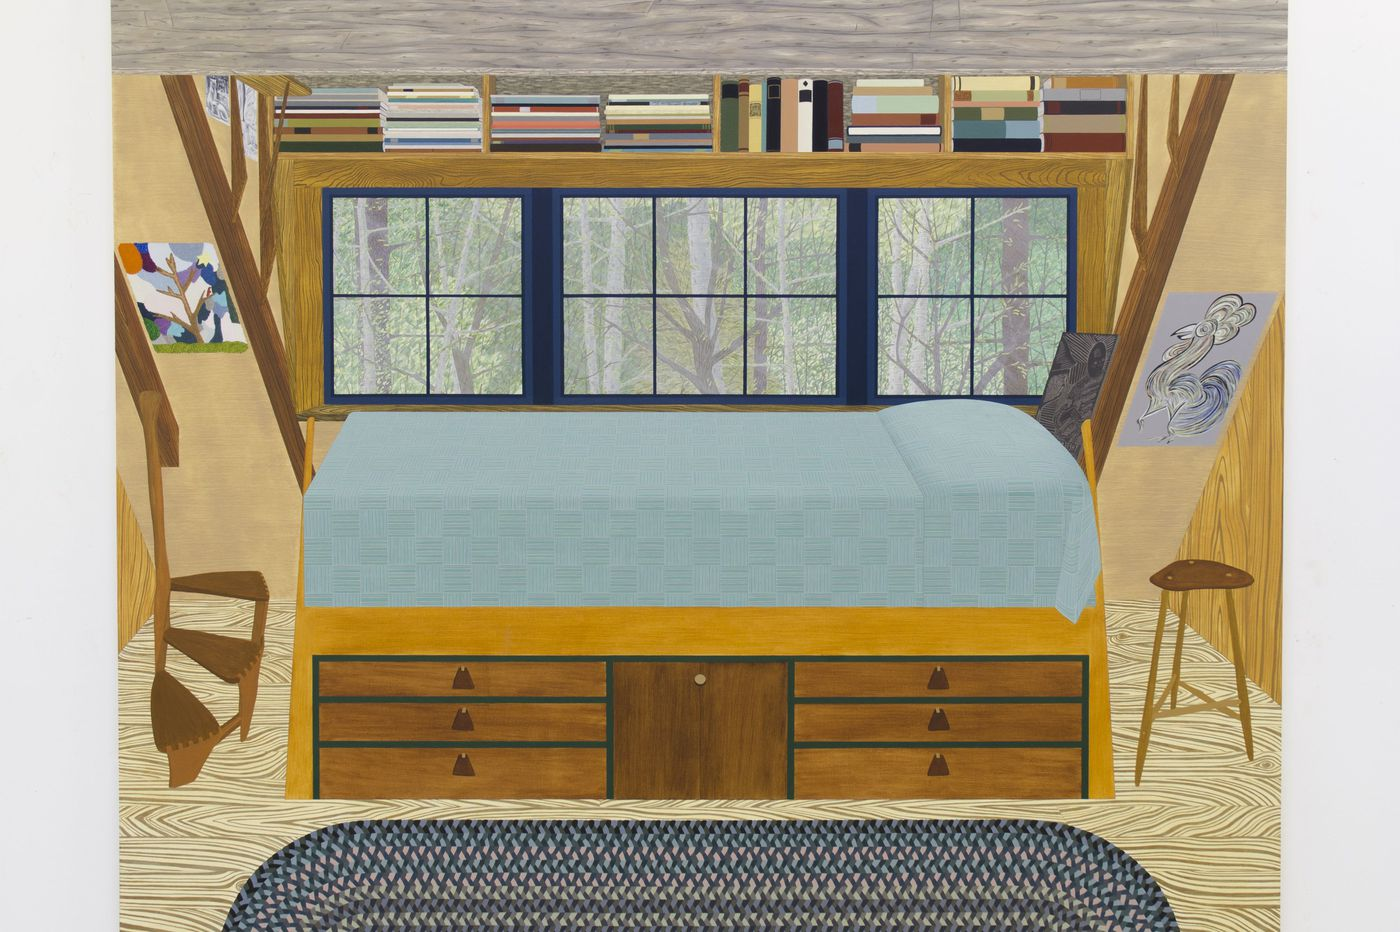 Wharton Esherick, re-interpreted, and other must-see shows in Philadelphia galleries right now